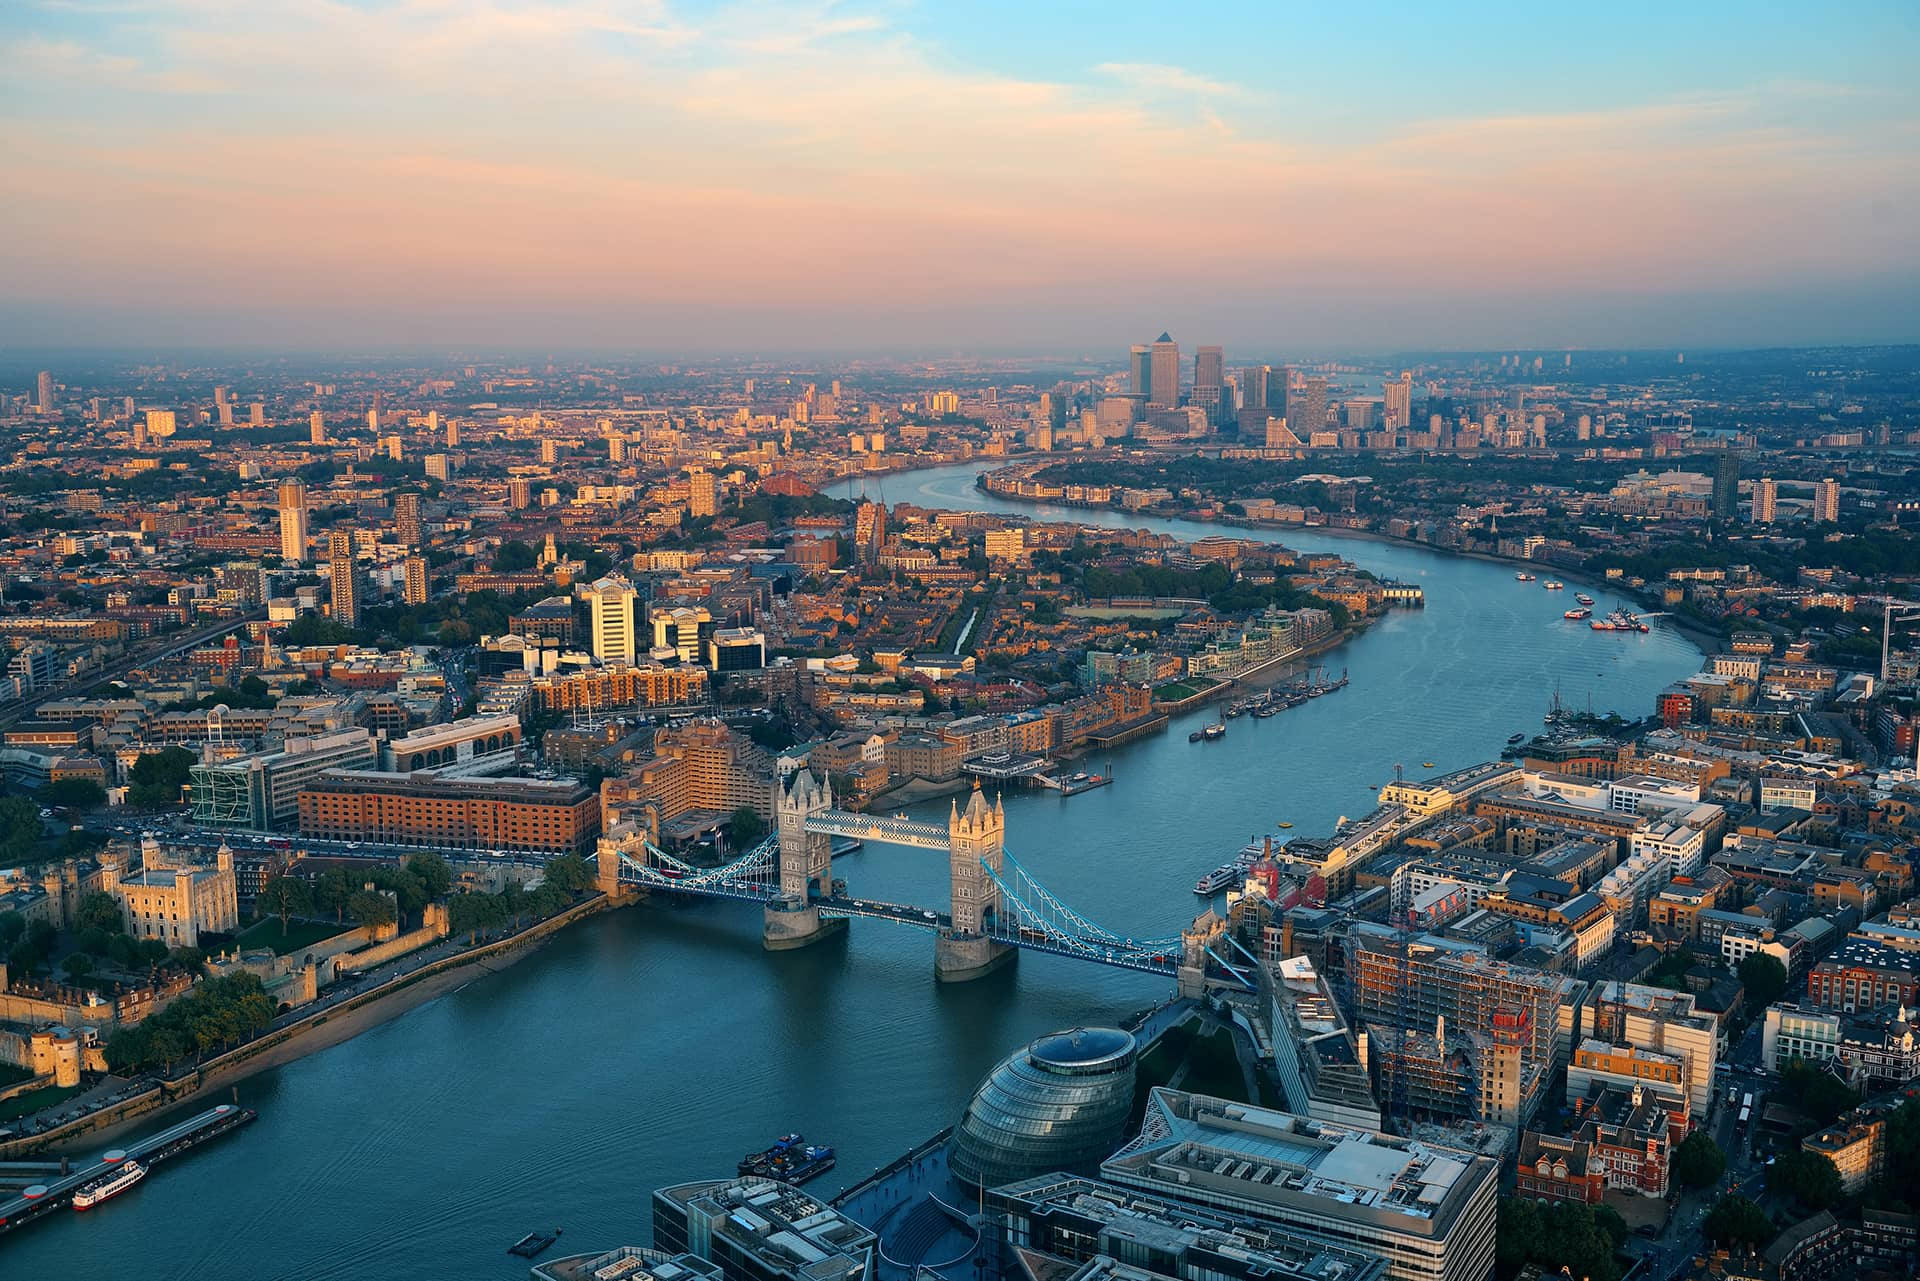 Tower Bridge, London - Aerial View